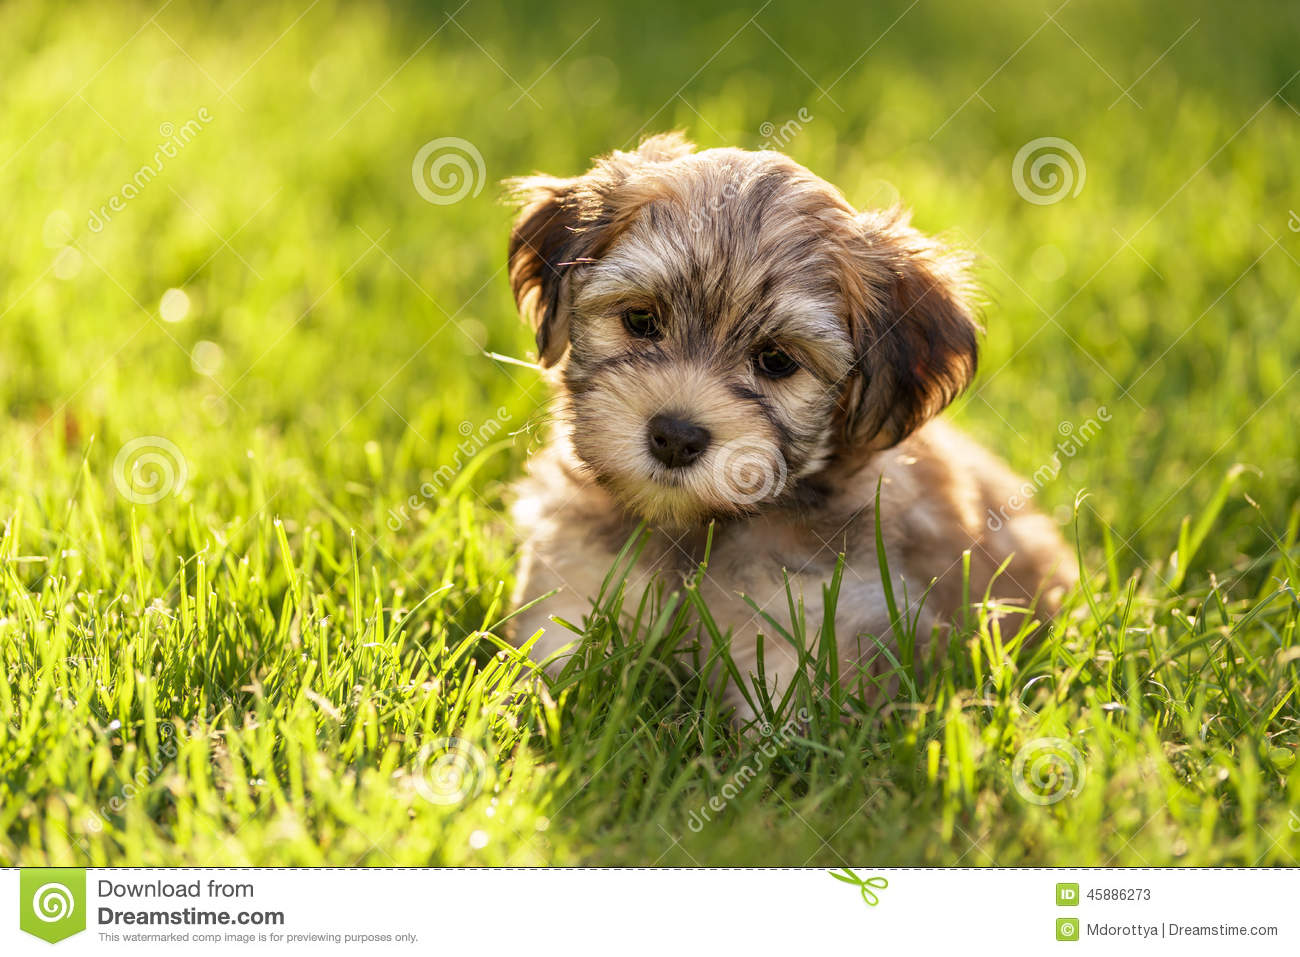 Cute Little Havanese Puppy Dog Is Sitting In The Grass